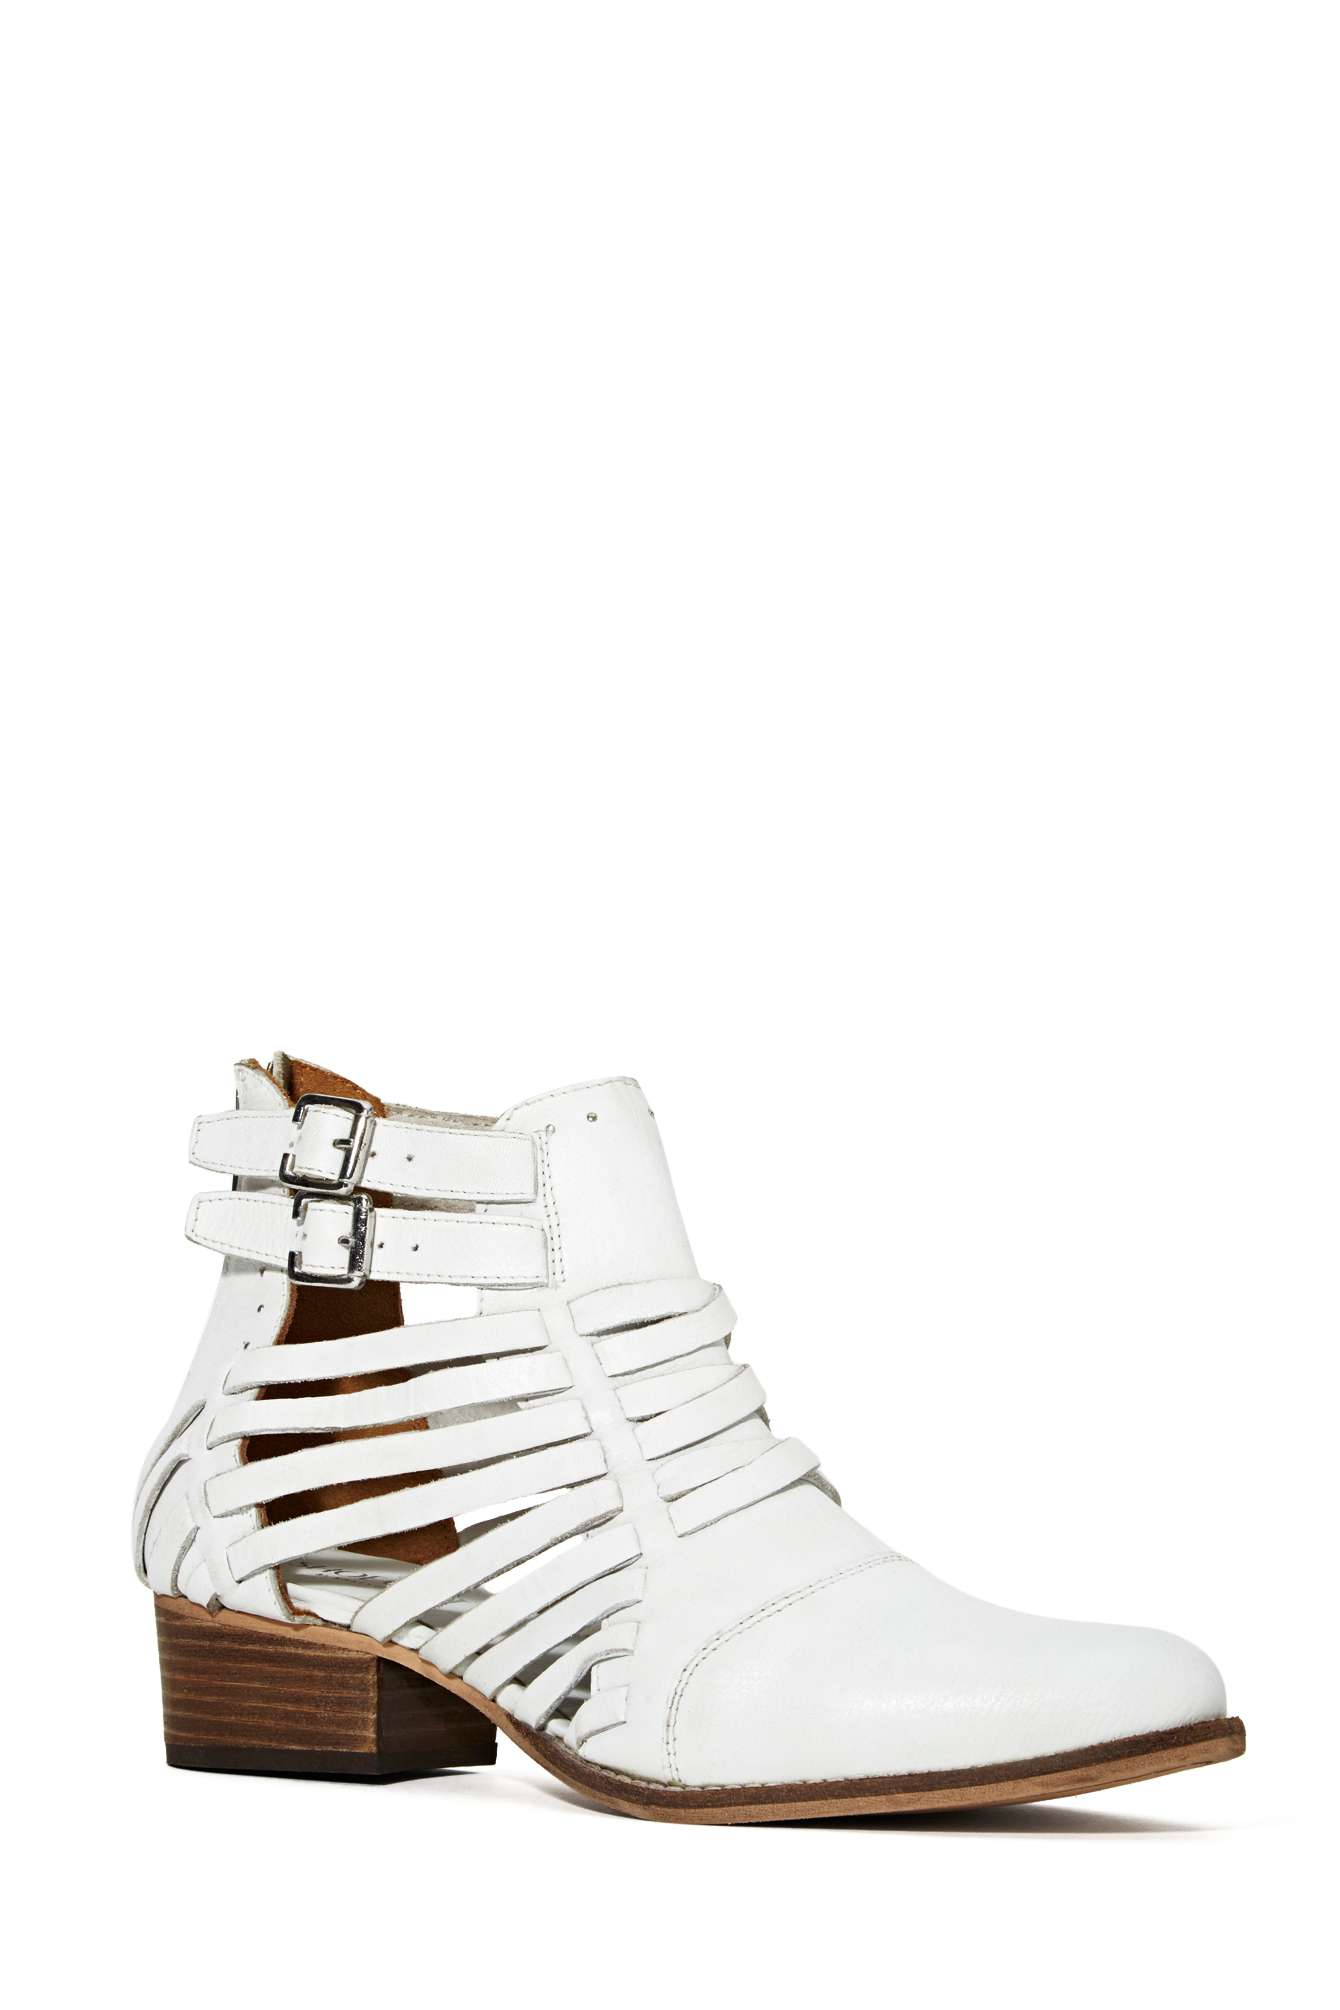 Shoe cult wild west side leather bootie